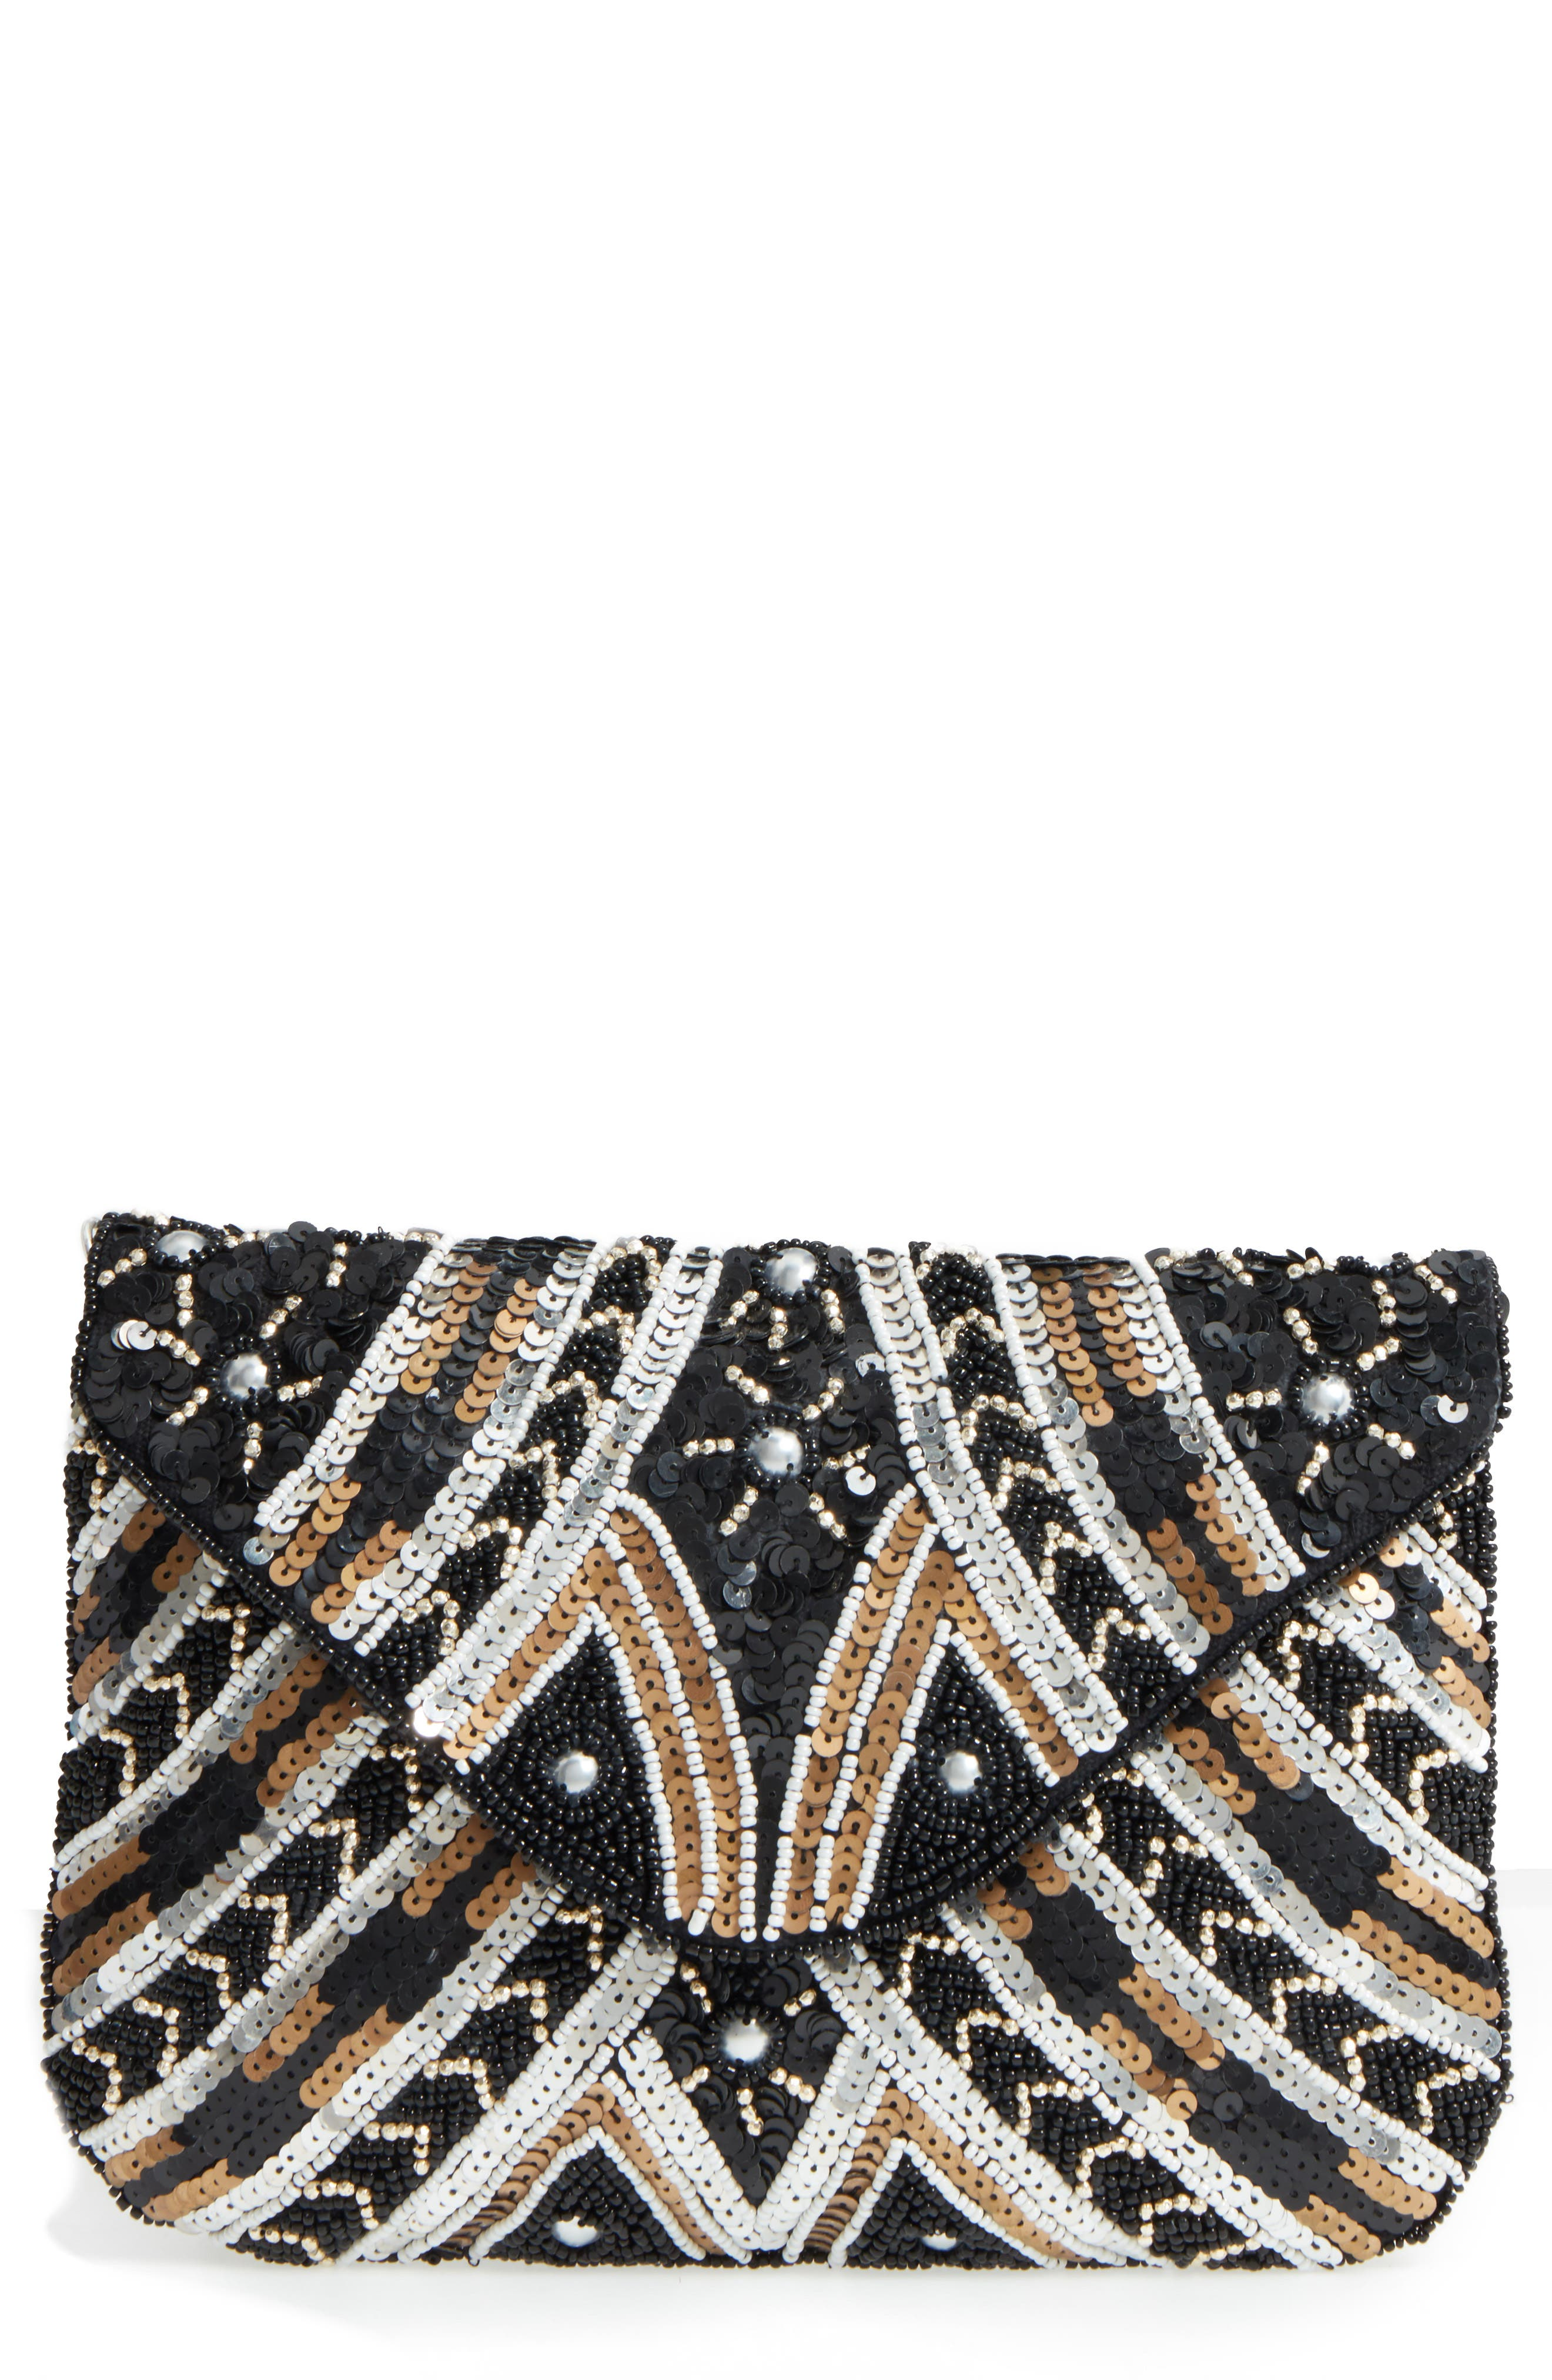 Alternate Image 1 Selected - Sole Society Beaded Clutch